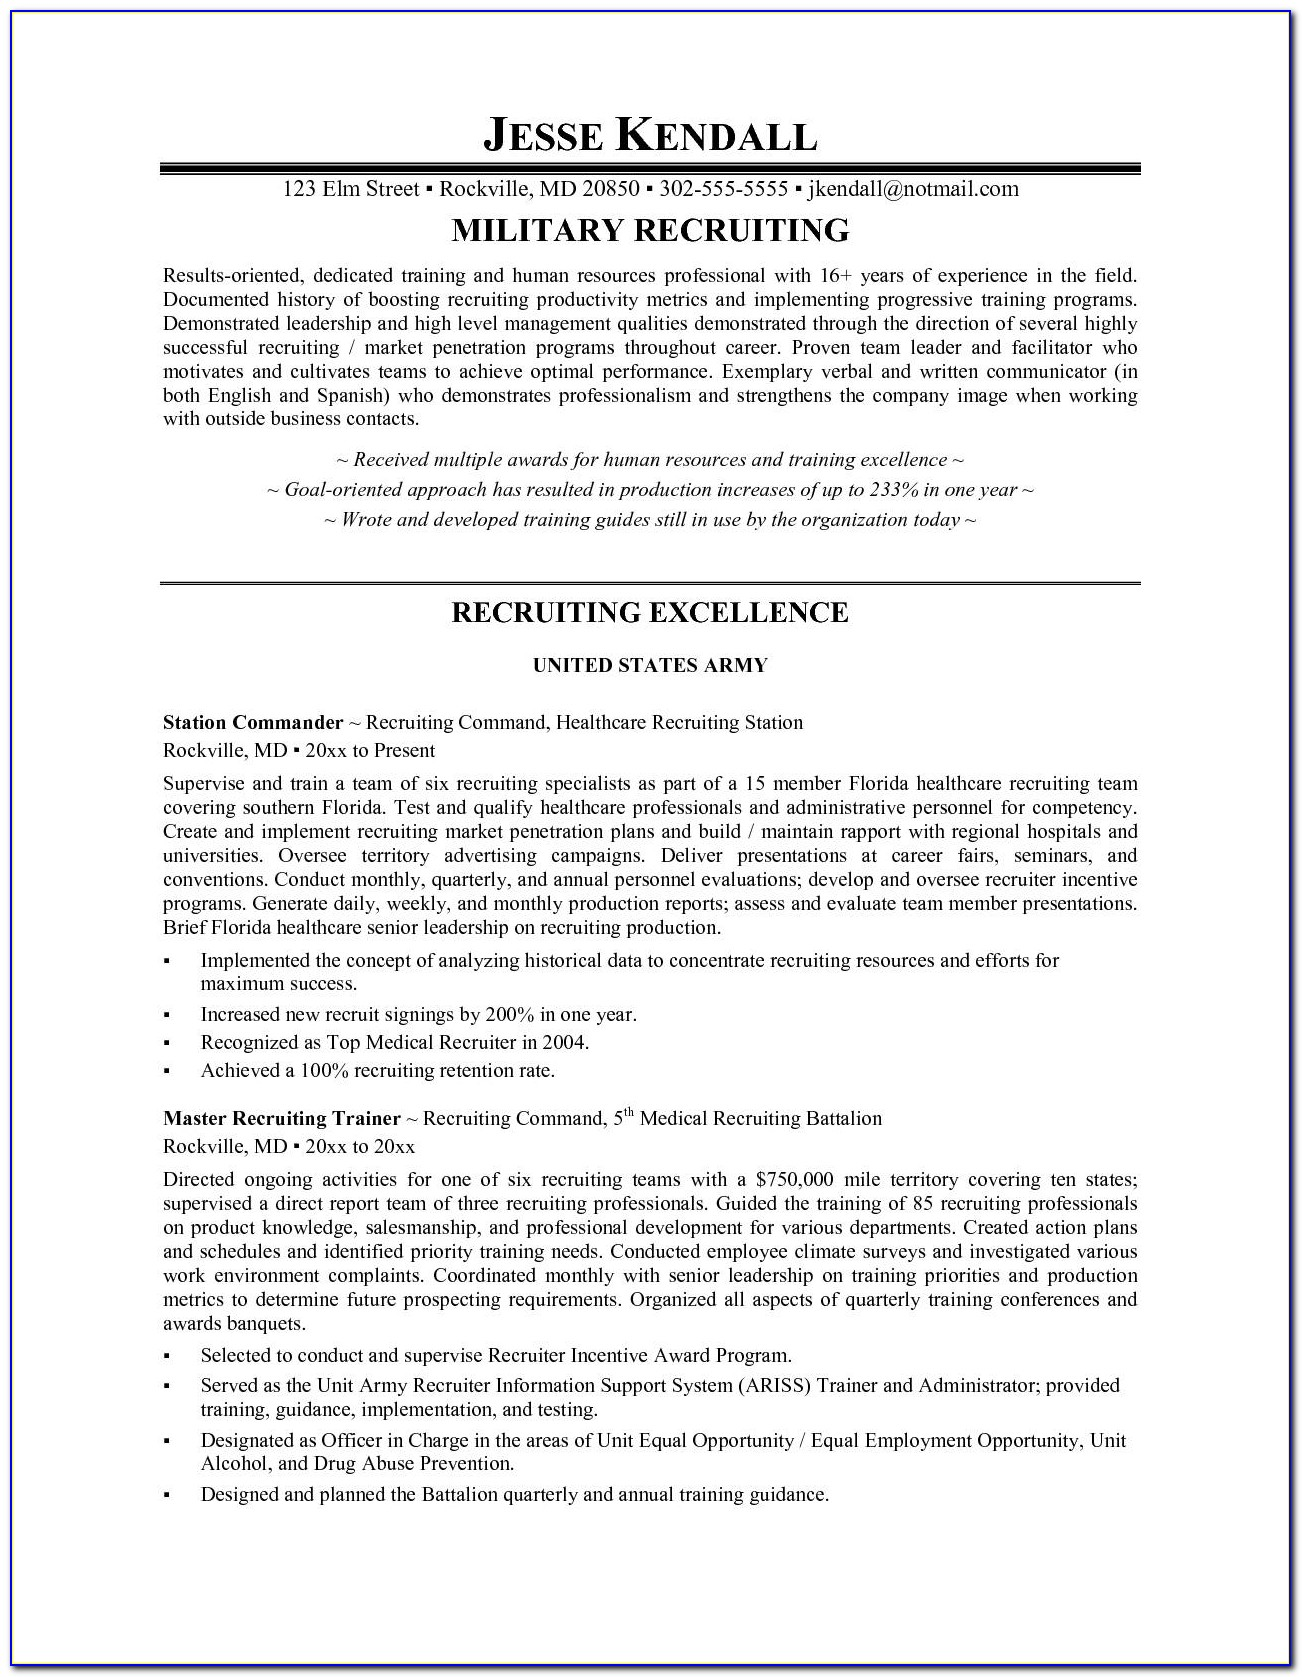 Sample Recruiter Resume | Resume Cv Cover Letter For Free Resume Database For Recruiters